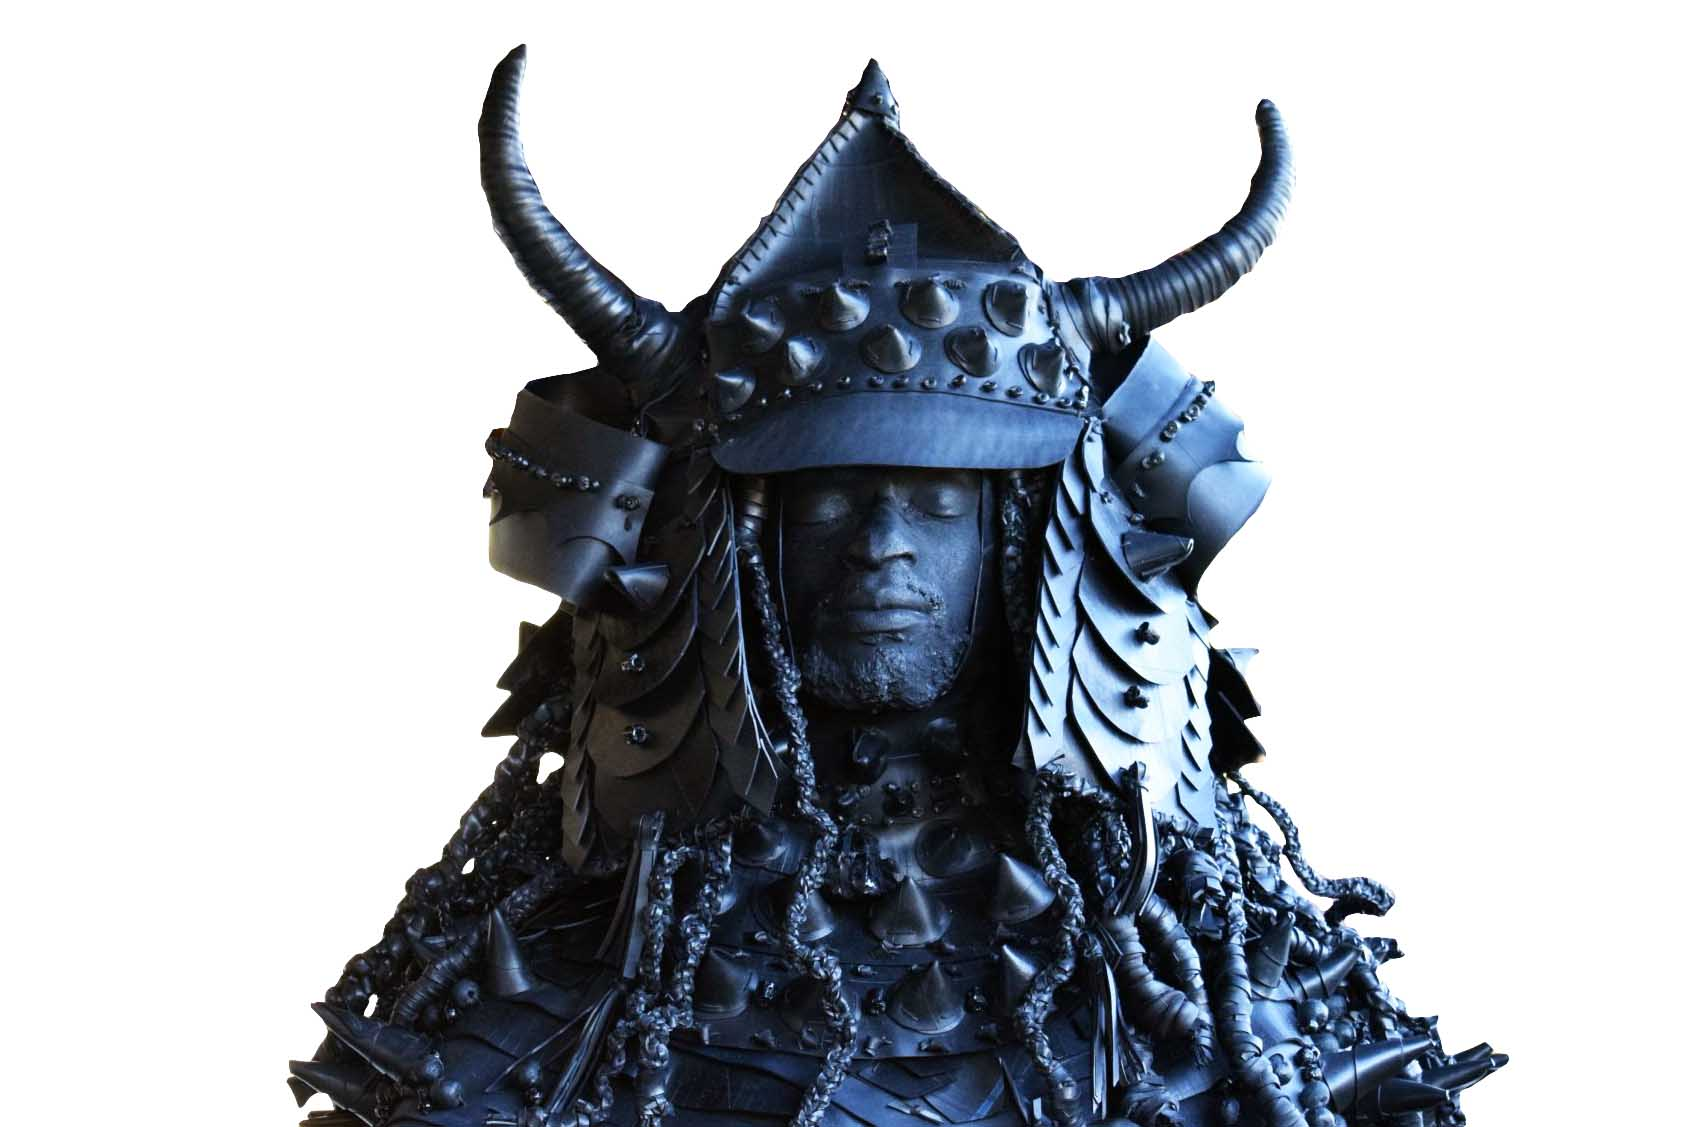 A headshot of another version of Yasuke, the African samurai, wearing a spiked helmet with two upward-facing horns and long dreadlocks.